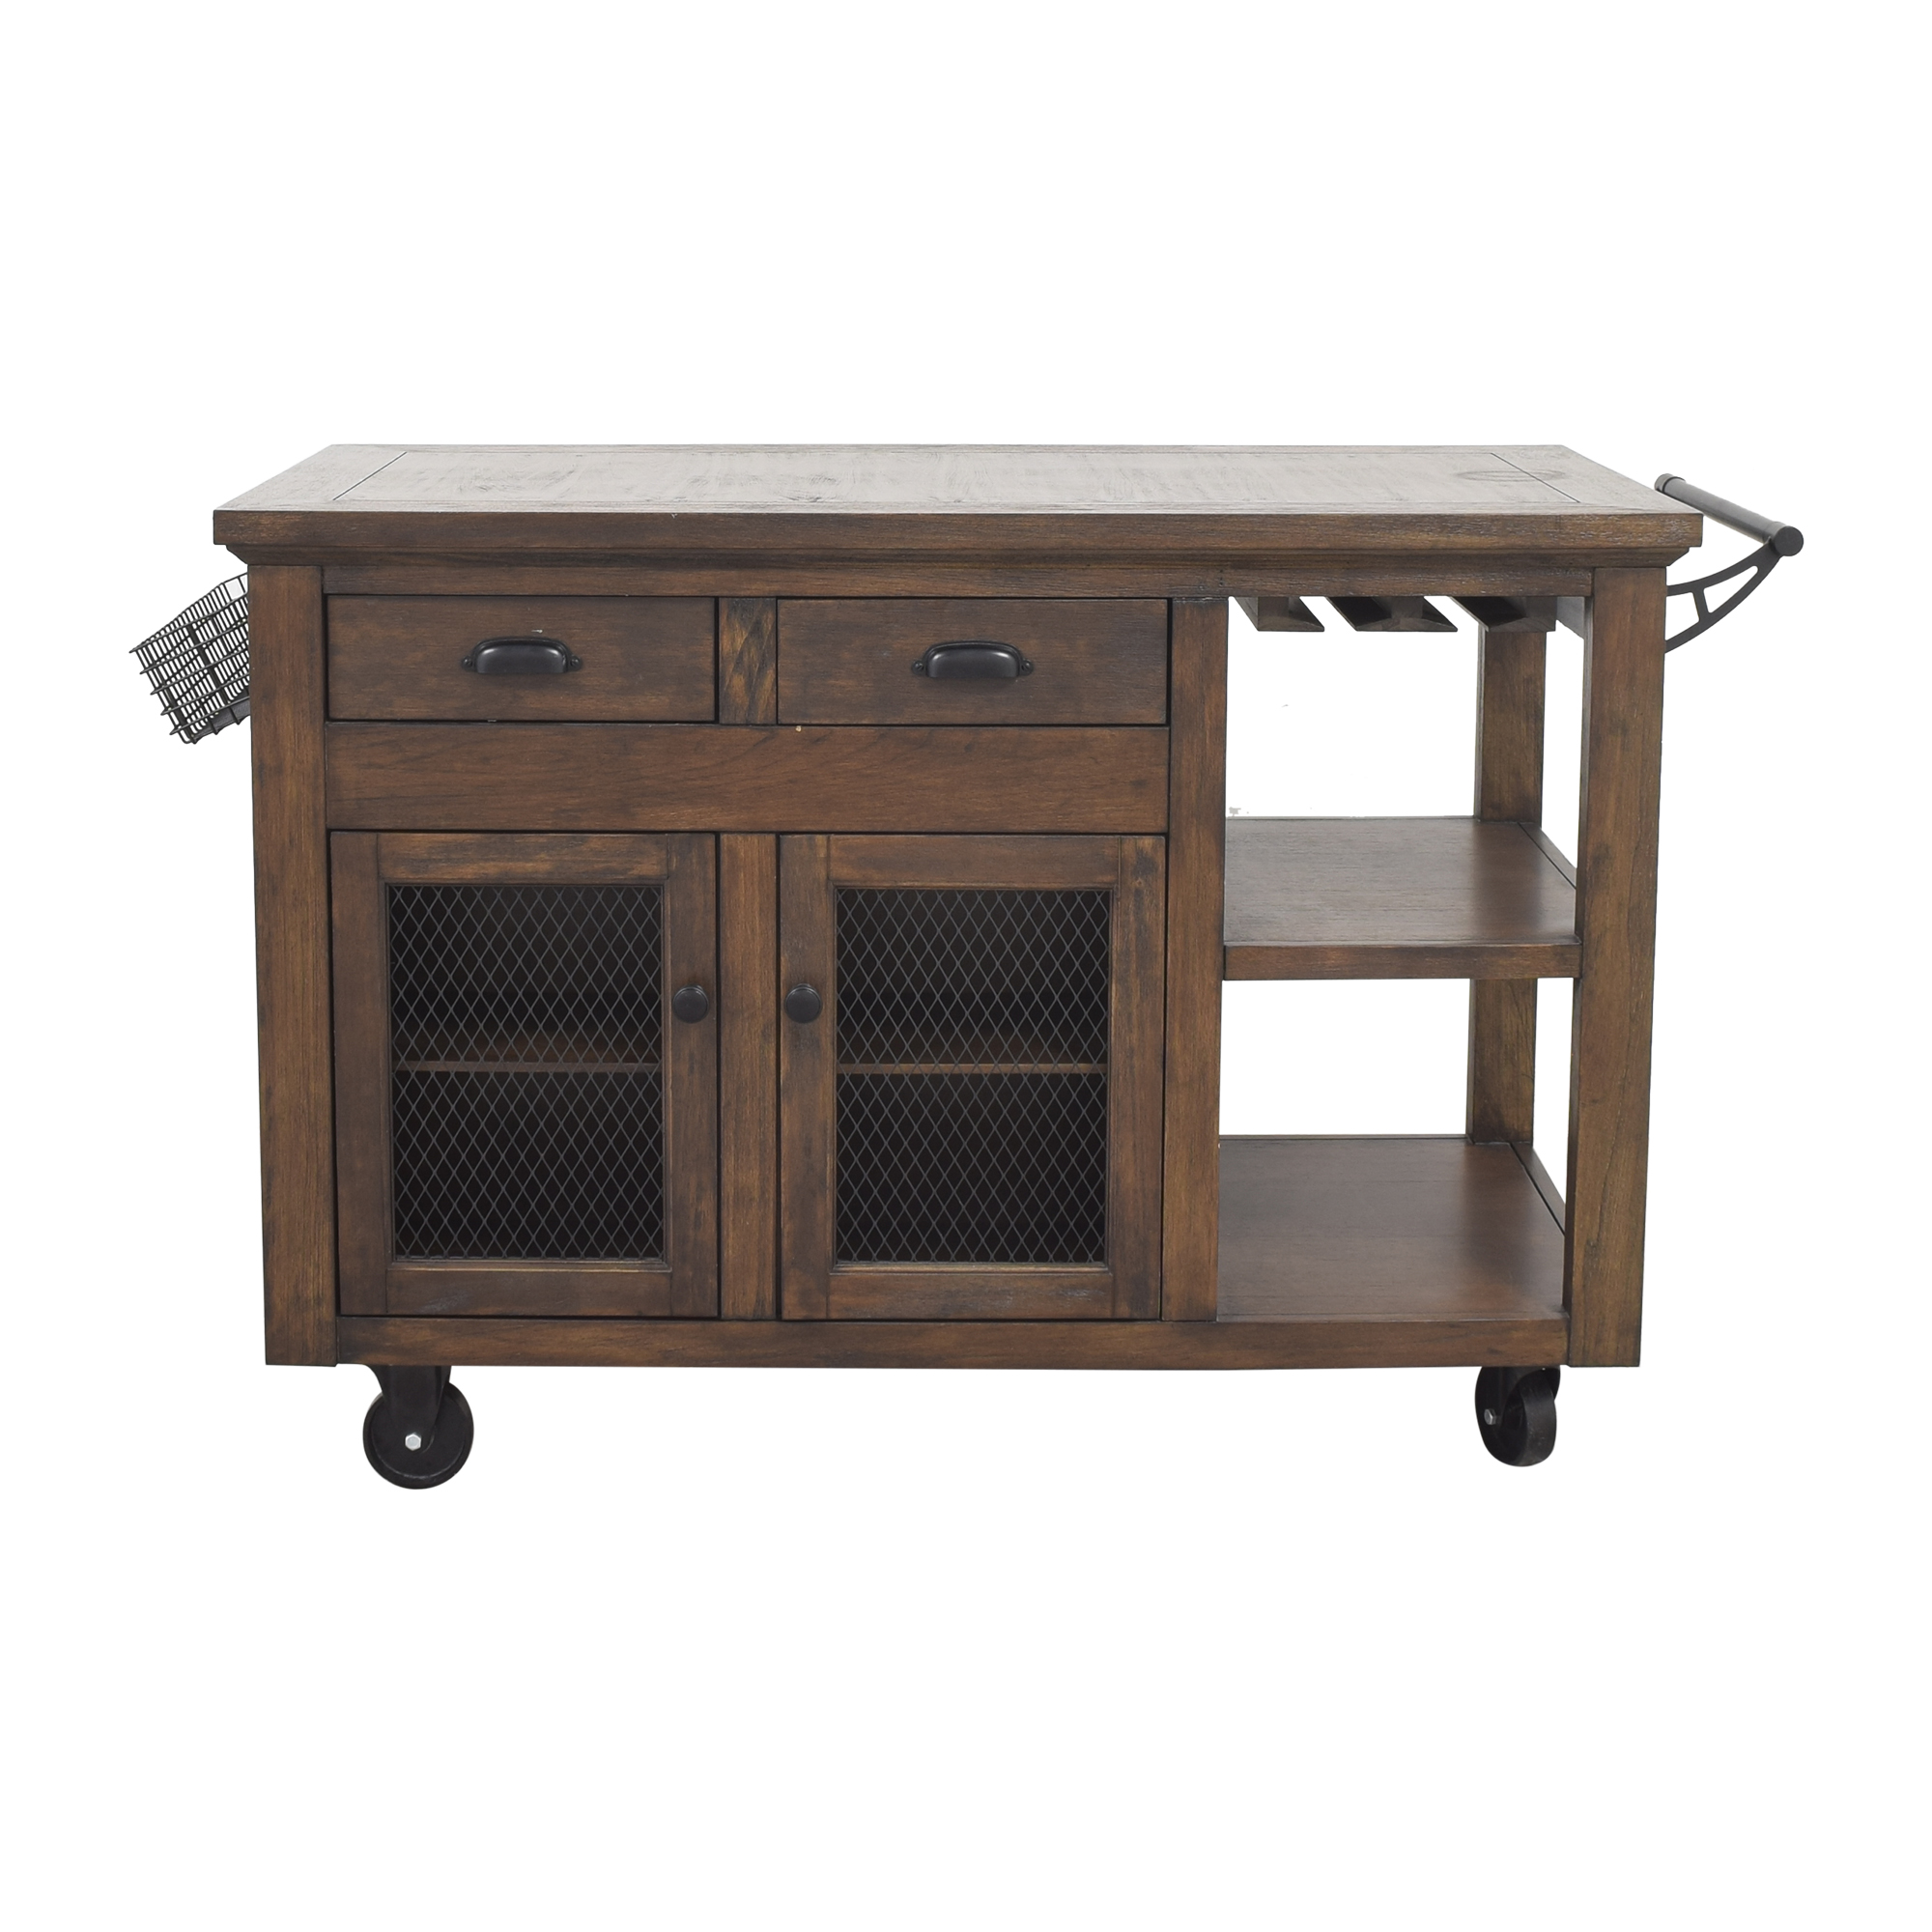 Home Decorators Collection Home Decorators Collection Cooper Rustic Kitchen Cart on sale